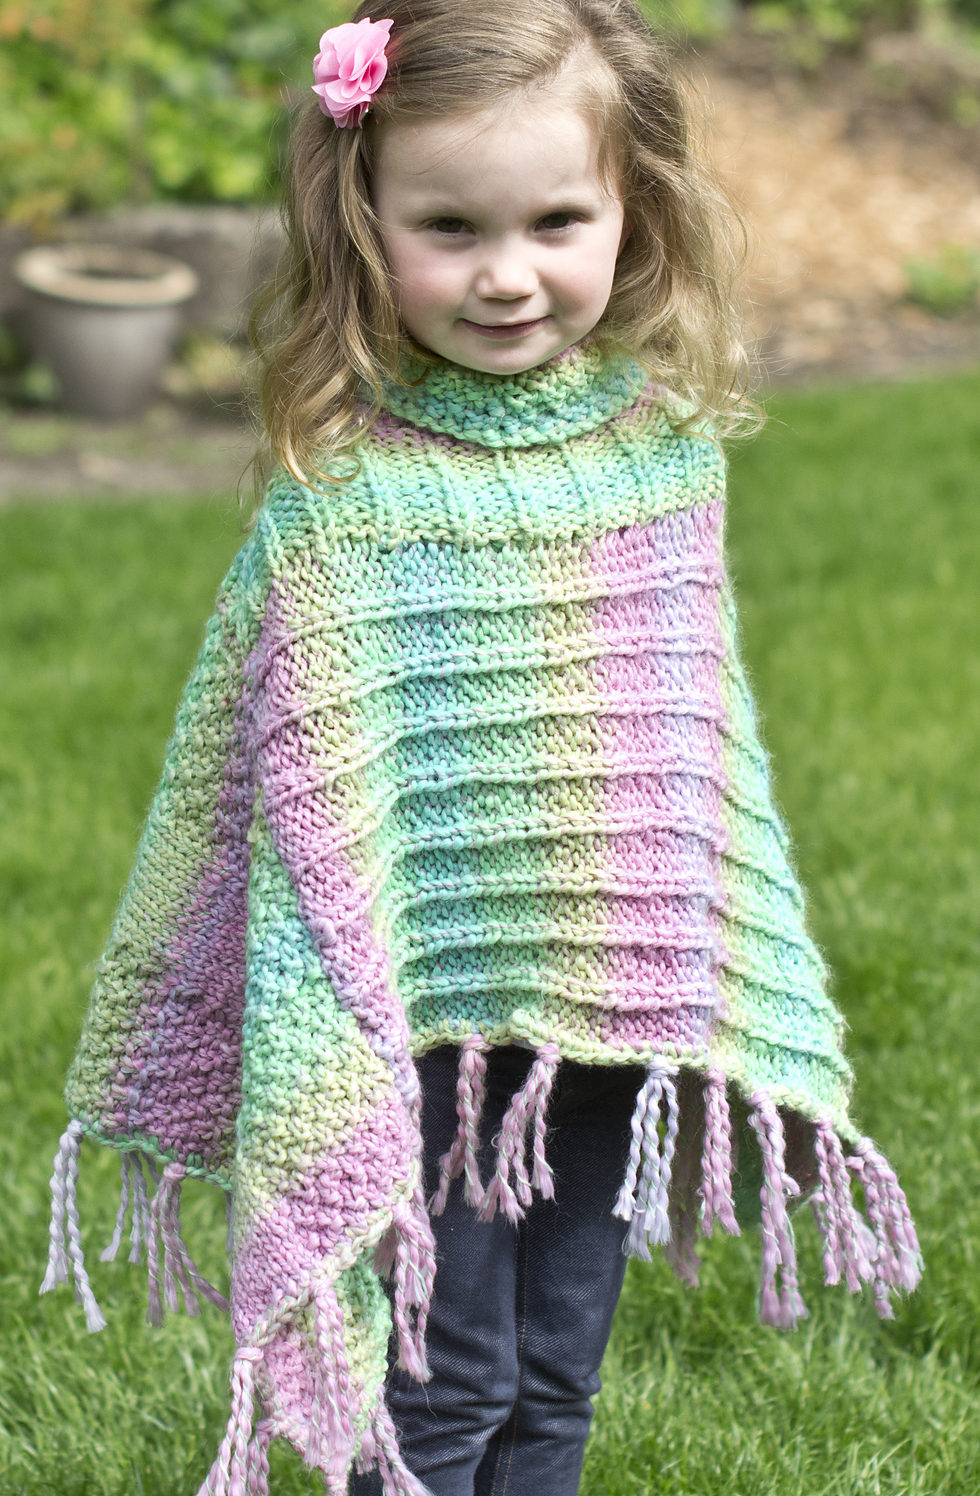 Knitting Pattern For Childs Poncho Ponchos For Babies And Children In The Loop Knitting